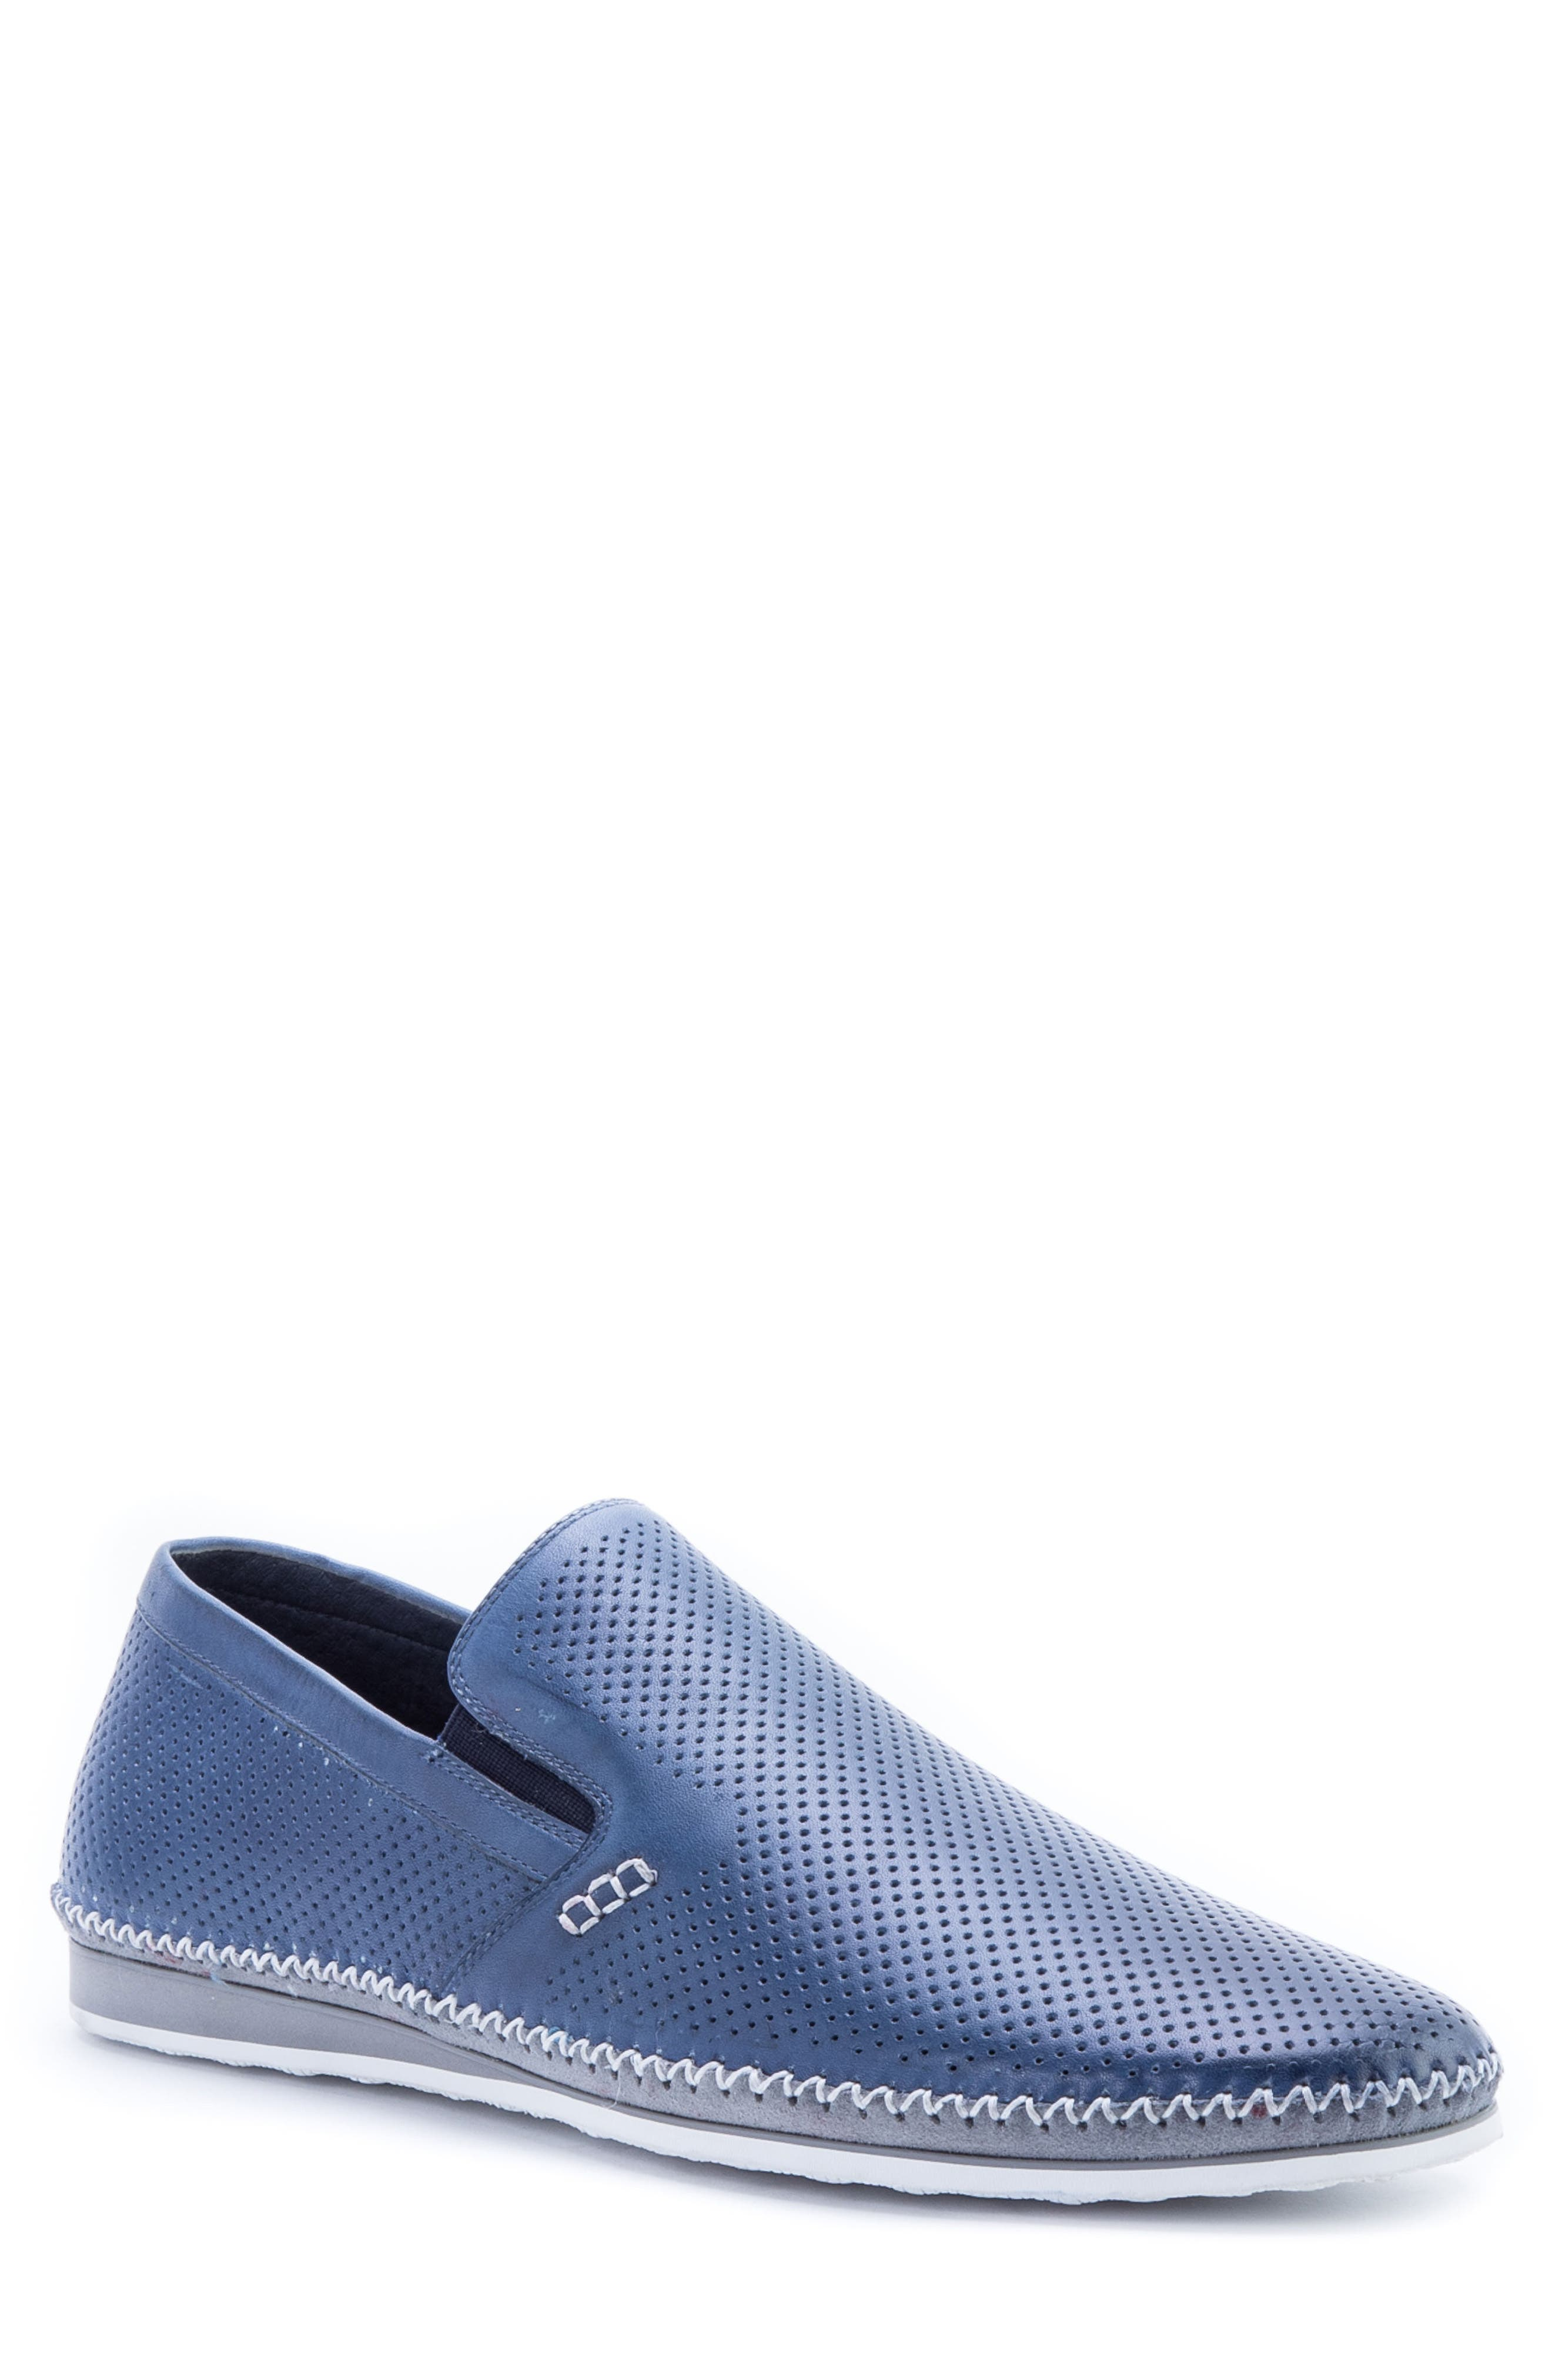 'Merz' Slip-On,                         Main,                         color, Navy/ Navy Leather